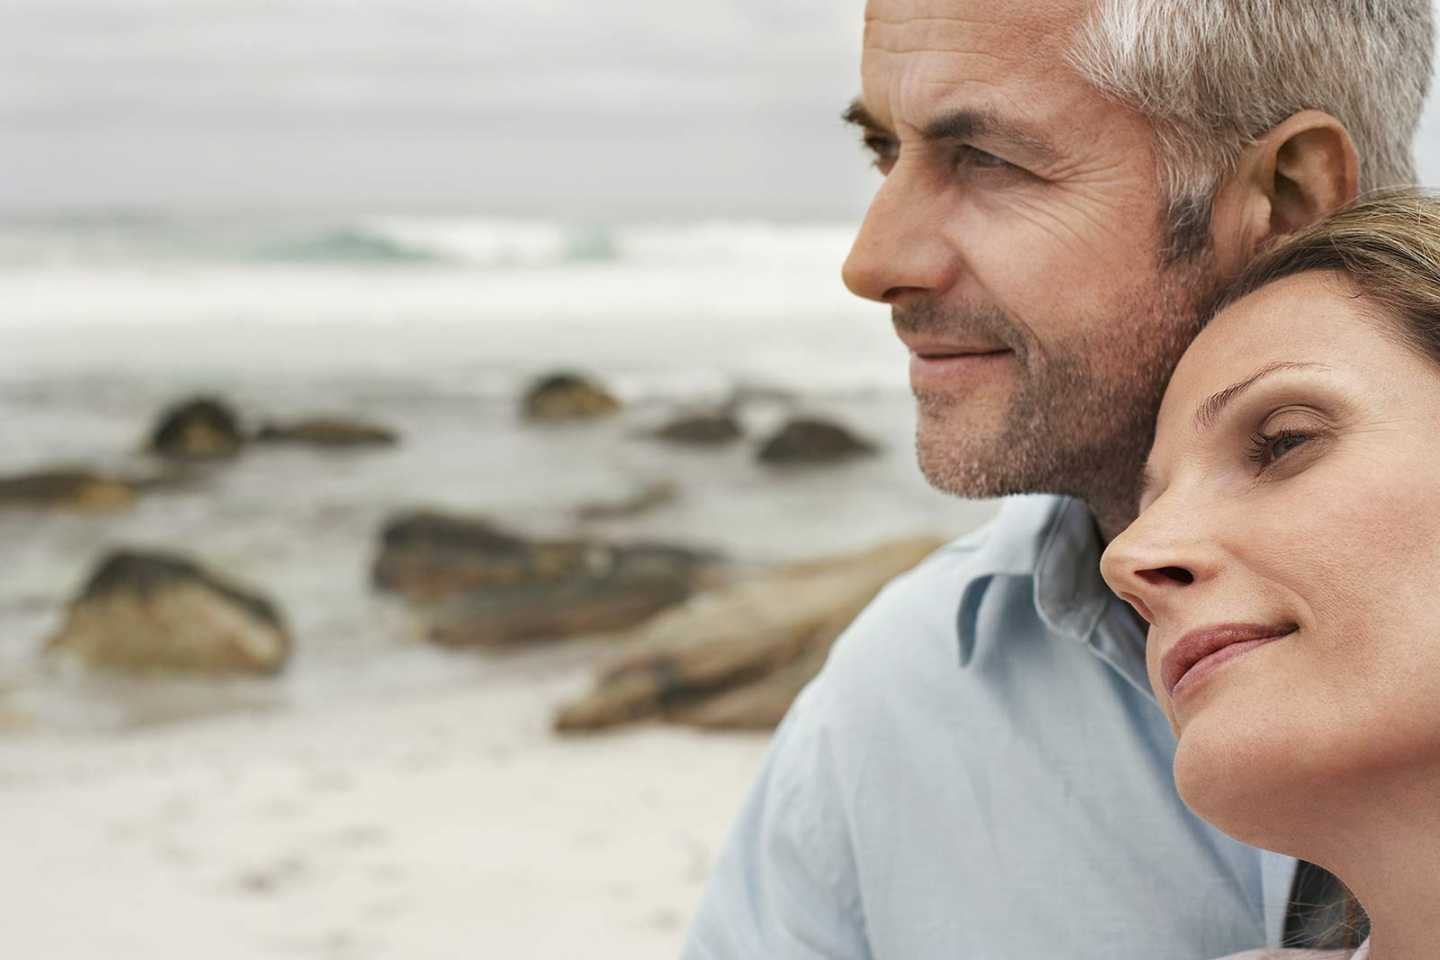 Over 50s Dating Advice with DatingAdvice.com